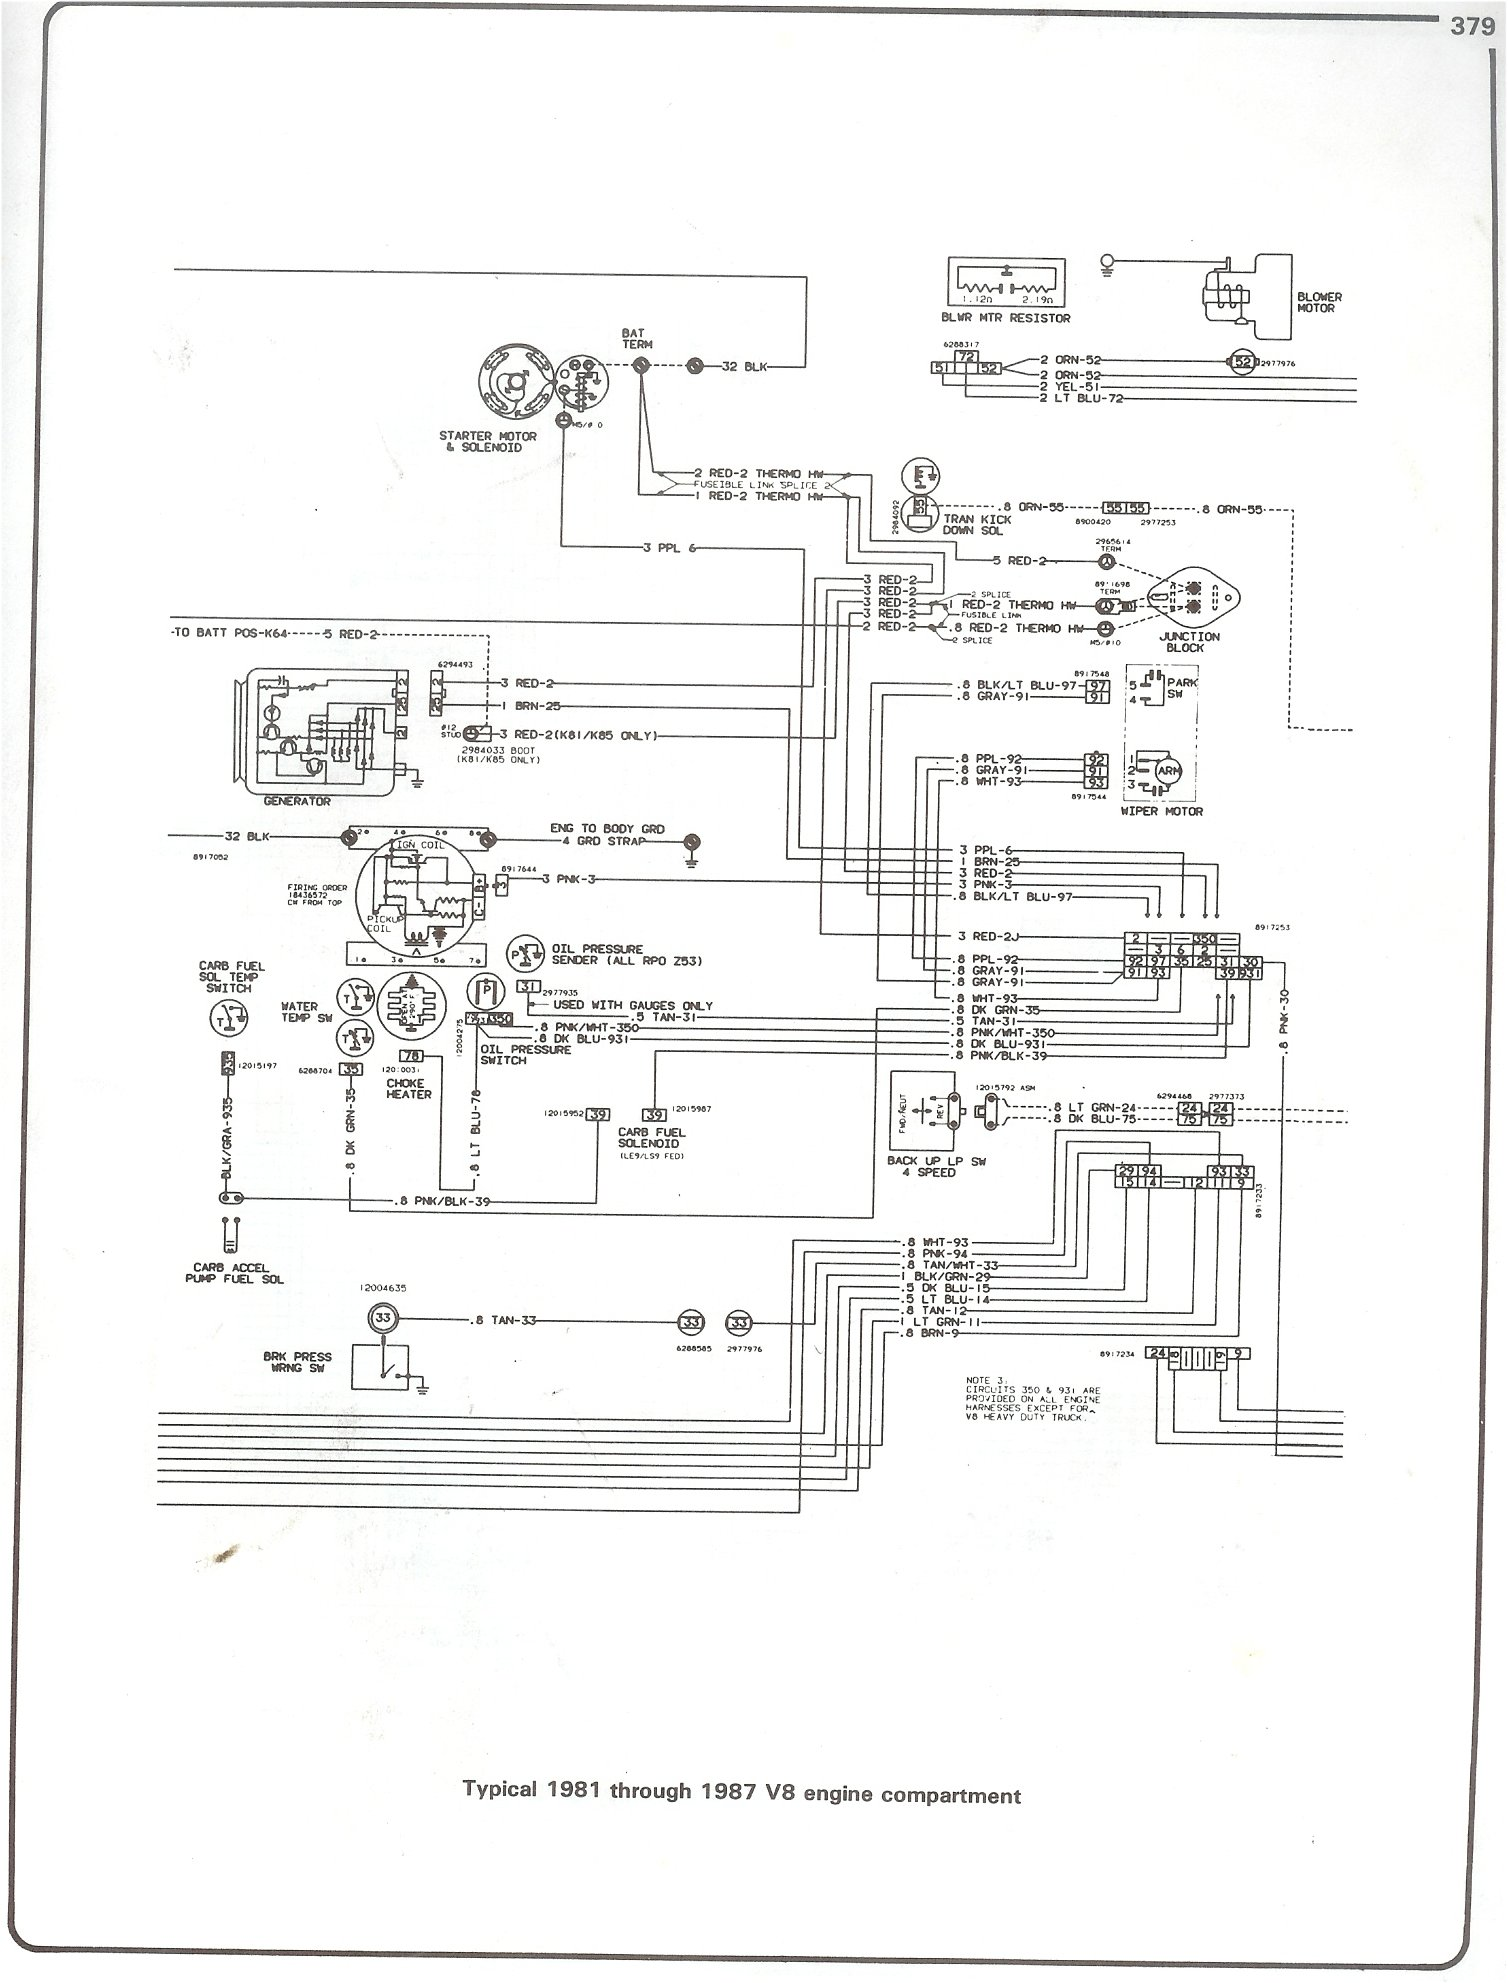 complete 73 87 wiring diagrams rh forum 73 87chevytrucks com 1987 chevy silverado wiring diagram 1987 chevy alternator wiring diagram